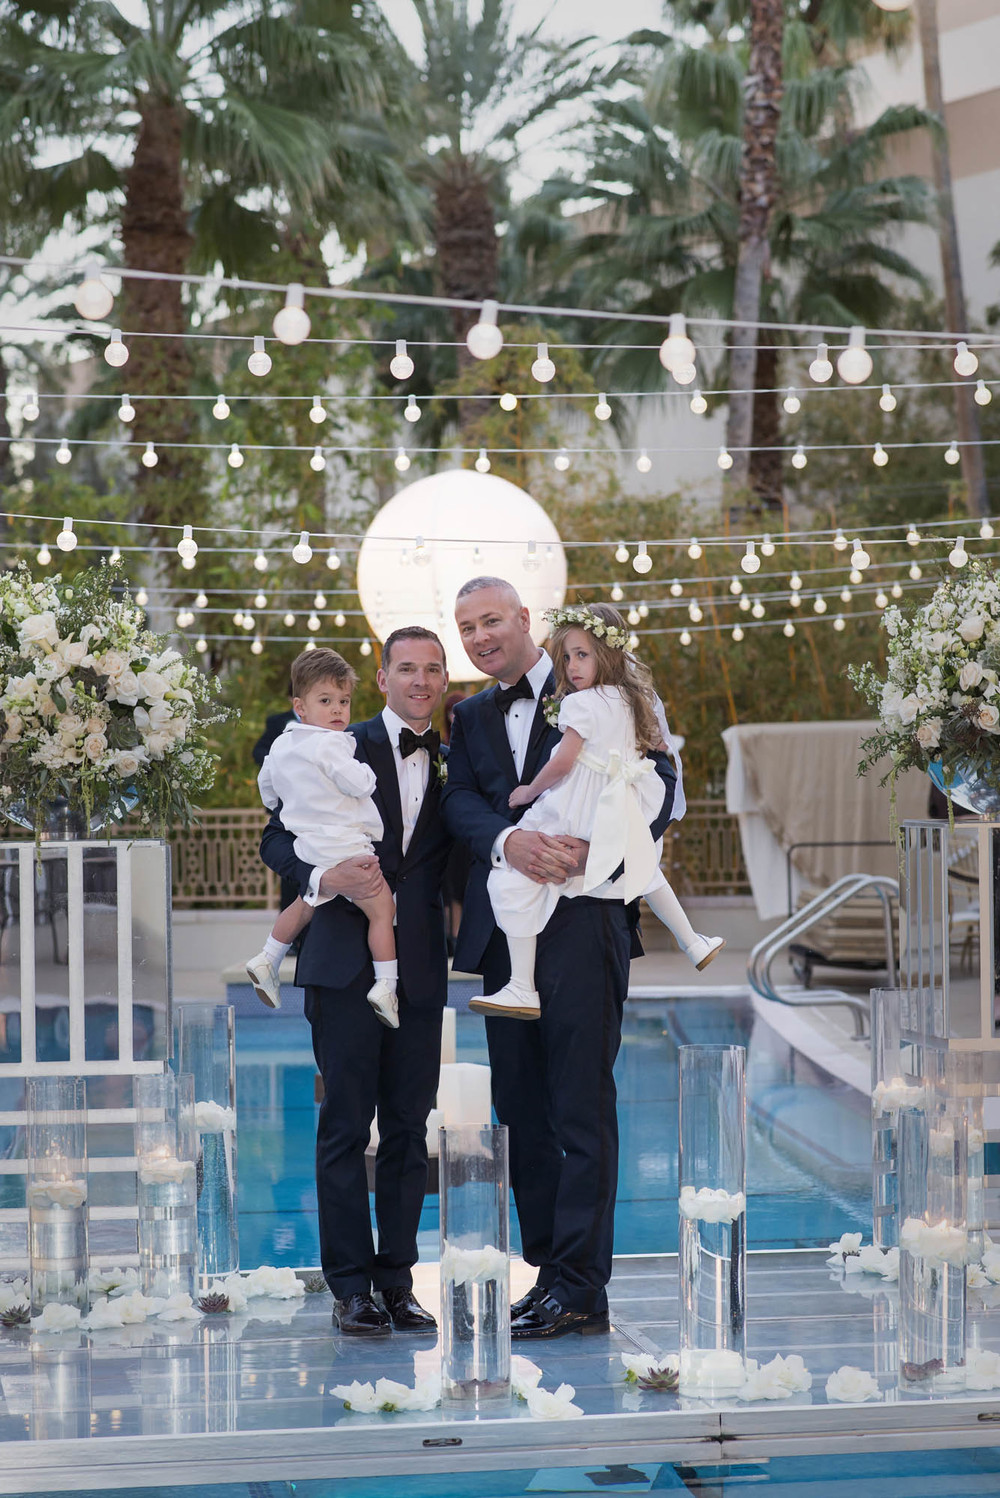 Family portrait of the two dads with their children on the day of their wedding. Gay Wedding at Red Rock Resort by Las Vegas Wedding Planner Andrea Eppolito.  Images by Altf Photography.  Florals and decor by Destinations by Design.  Two grooms at a gay wedding in Las Vegas.